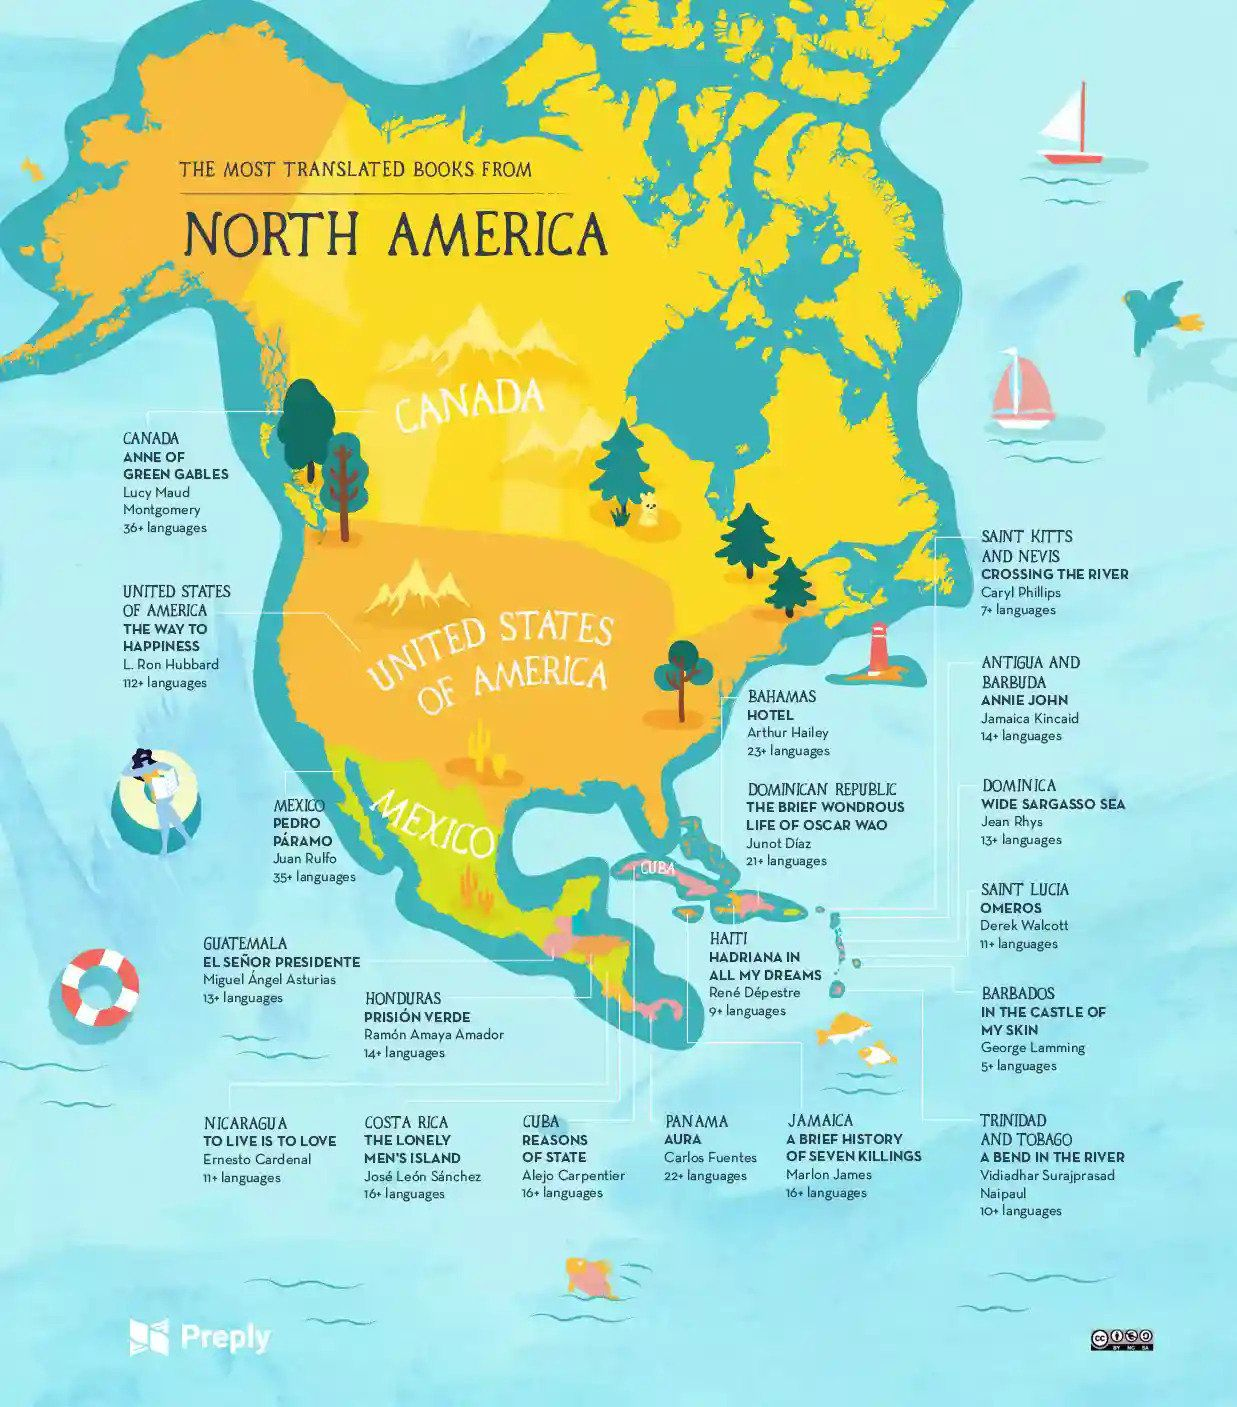 Most translated books in North America map